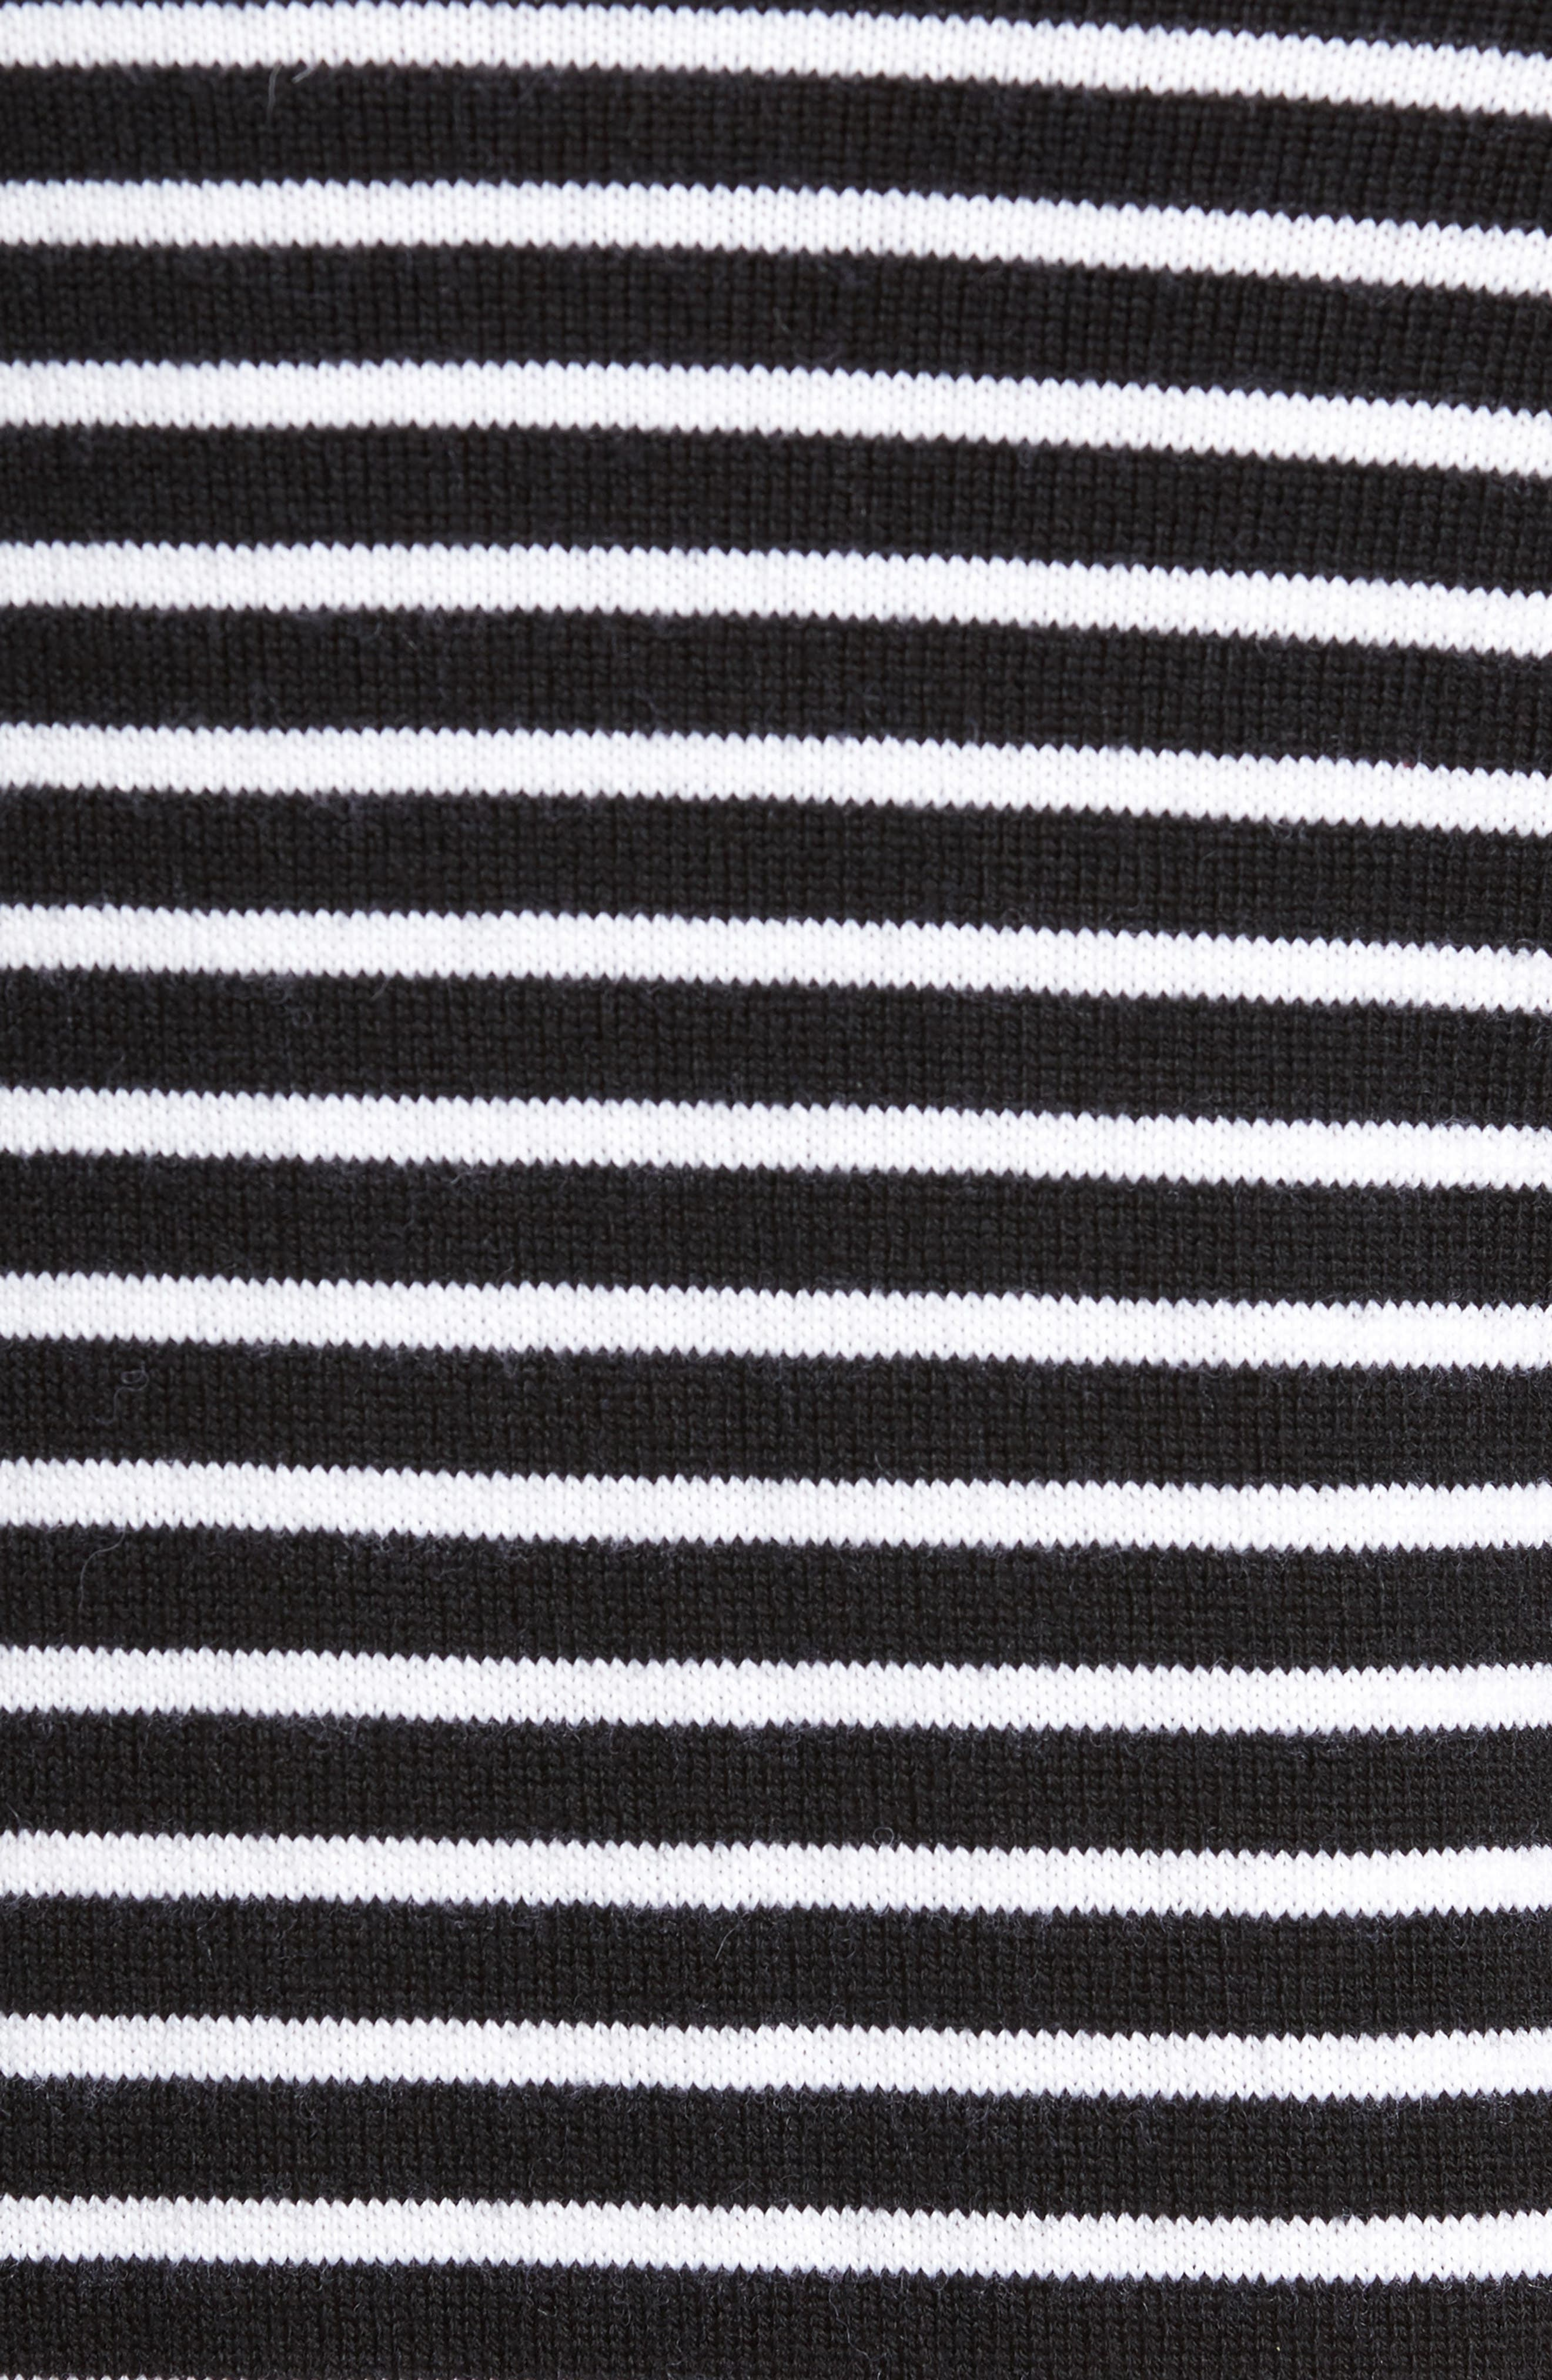 Regular Fit Striped Wool Sweater,                             Alternate thumbnail 5, color,                             Black/ Stormy White